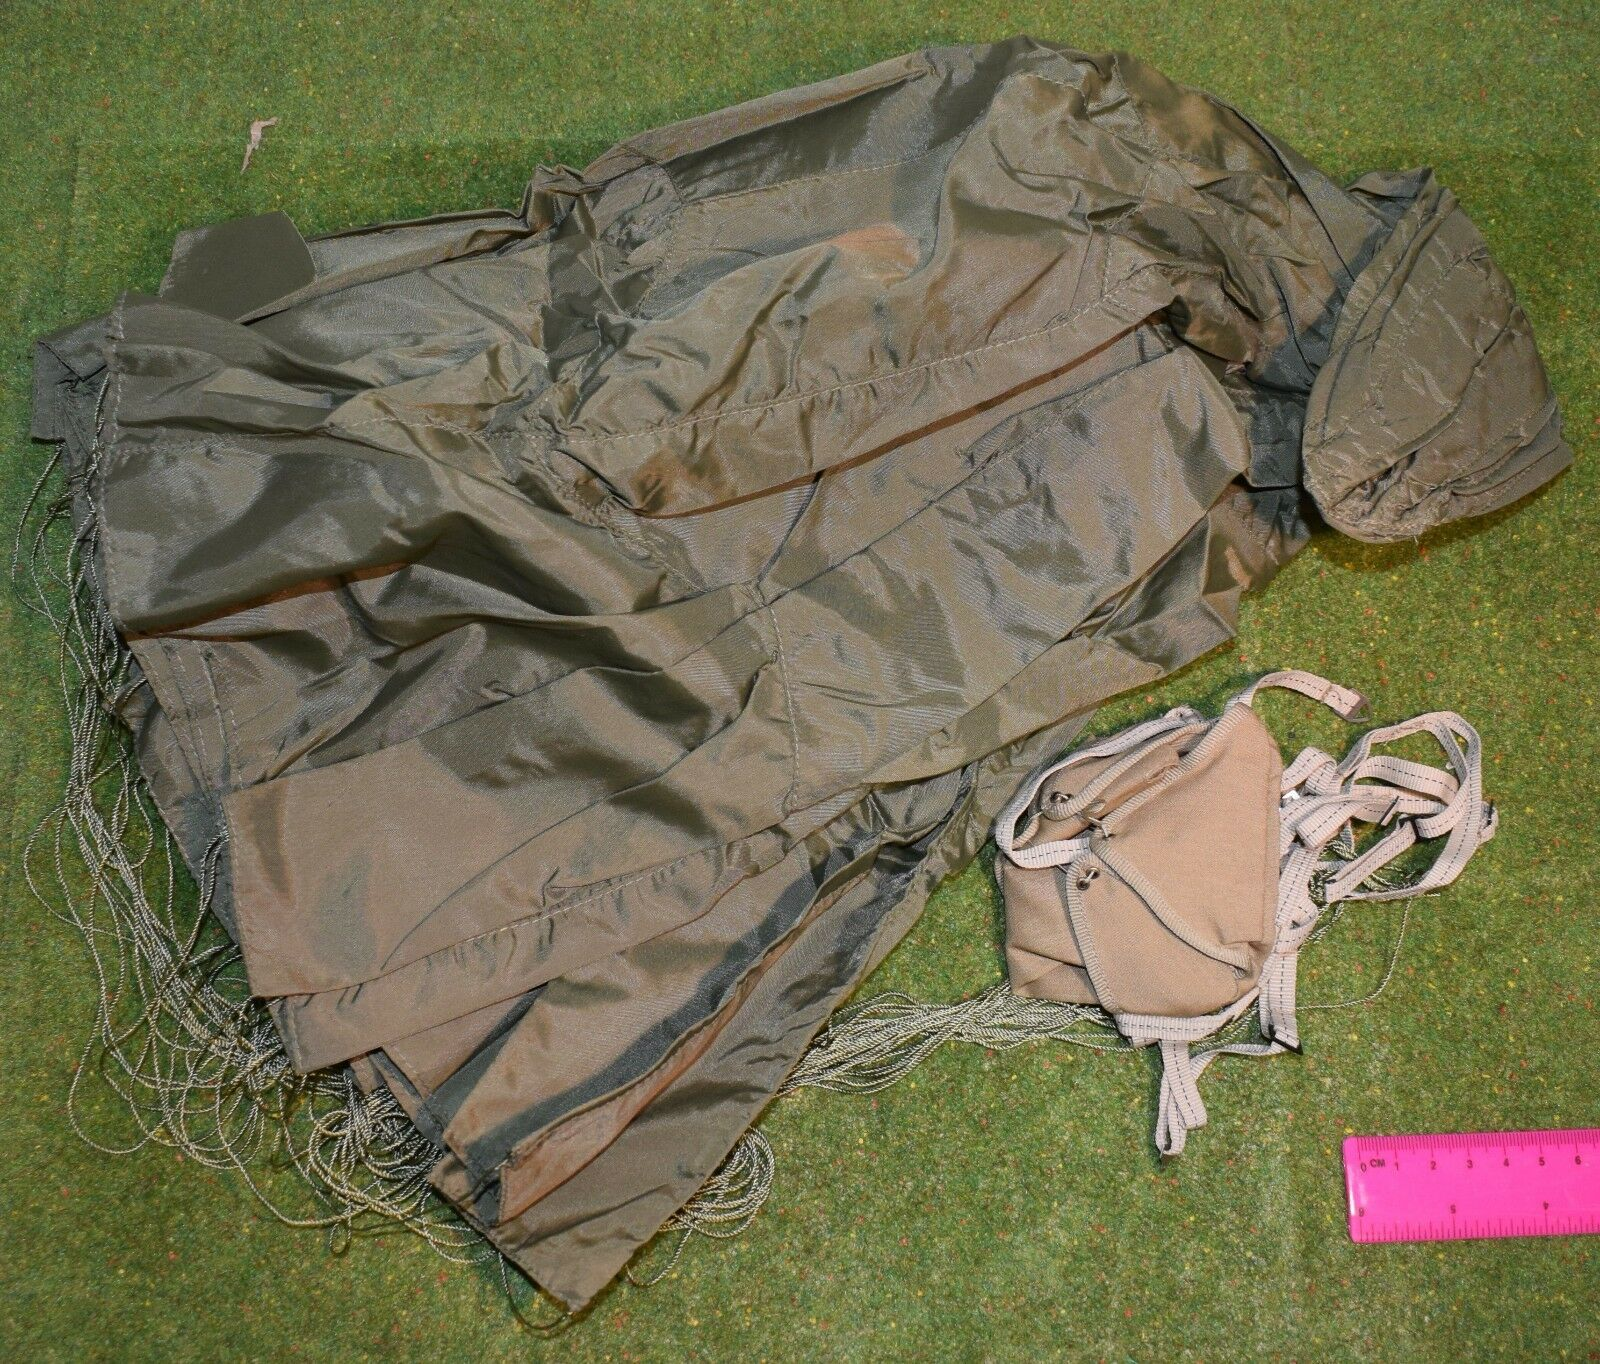 DRAGON 1/6 SCALE WWII BRITISH PARACHUTE FROM HARRY COLLINS FOR BBI DID IN DREAMS